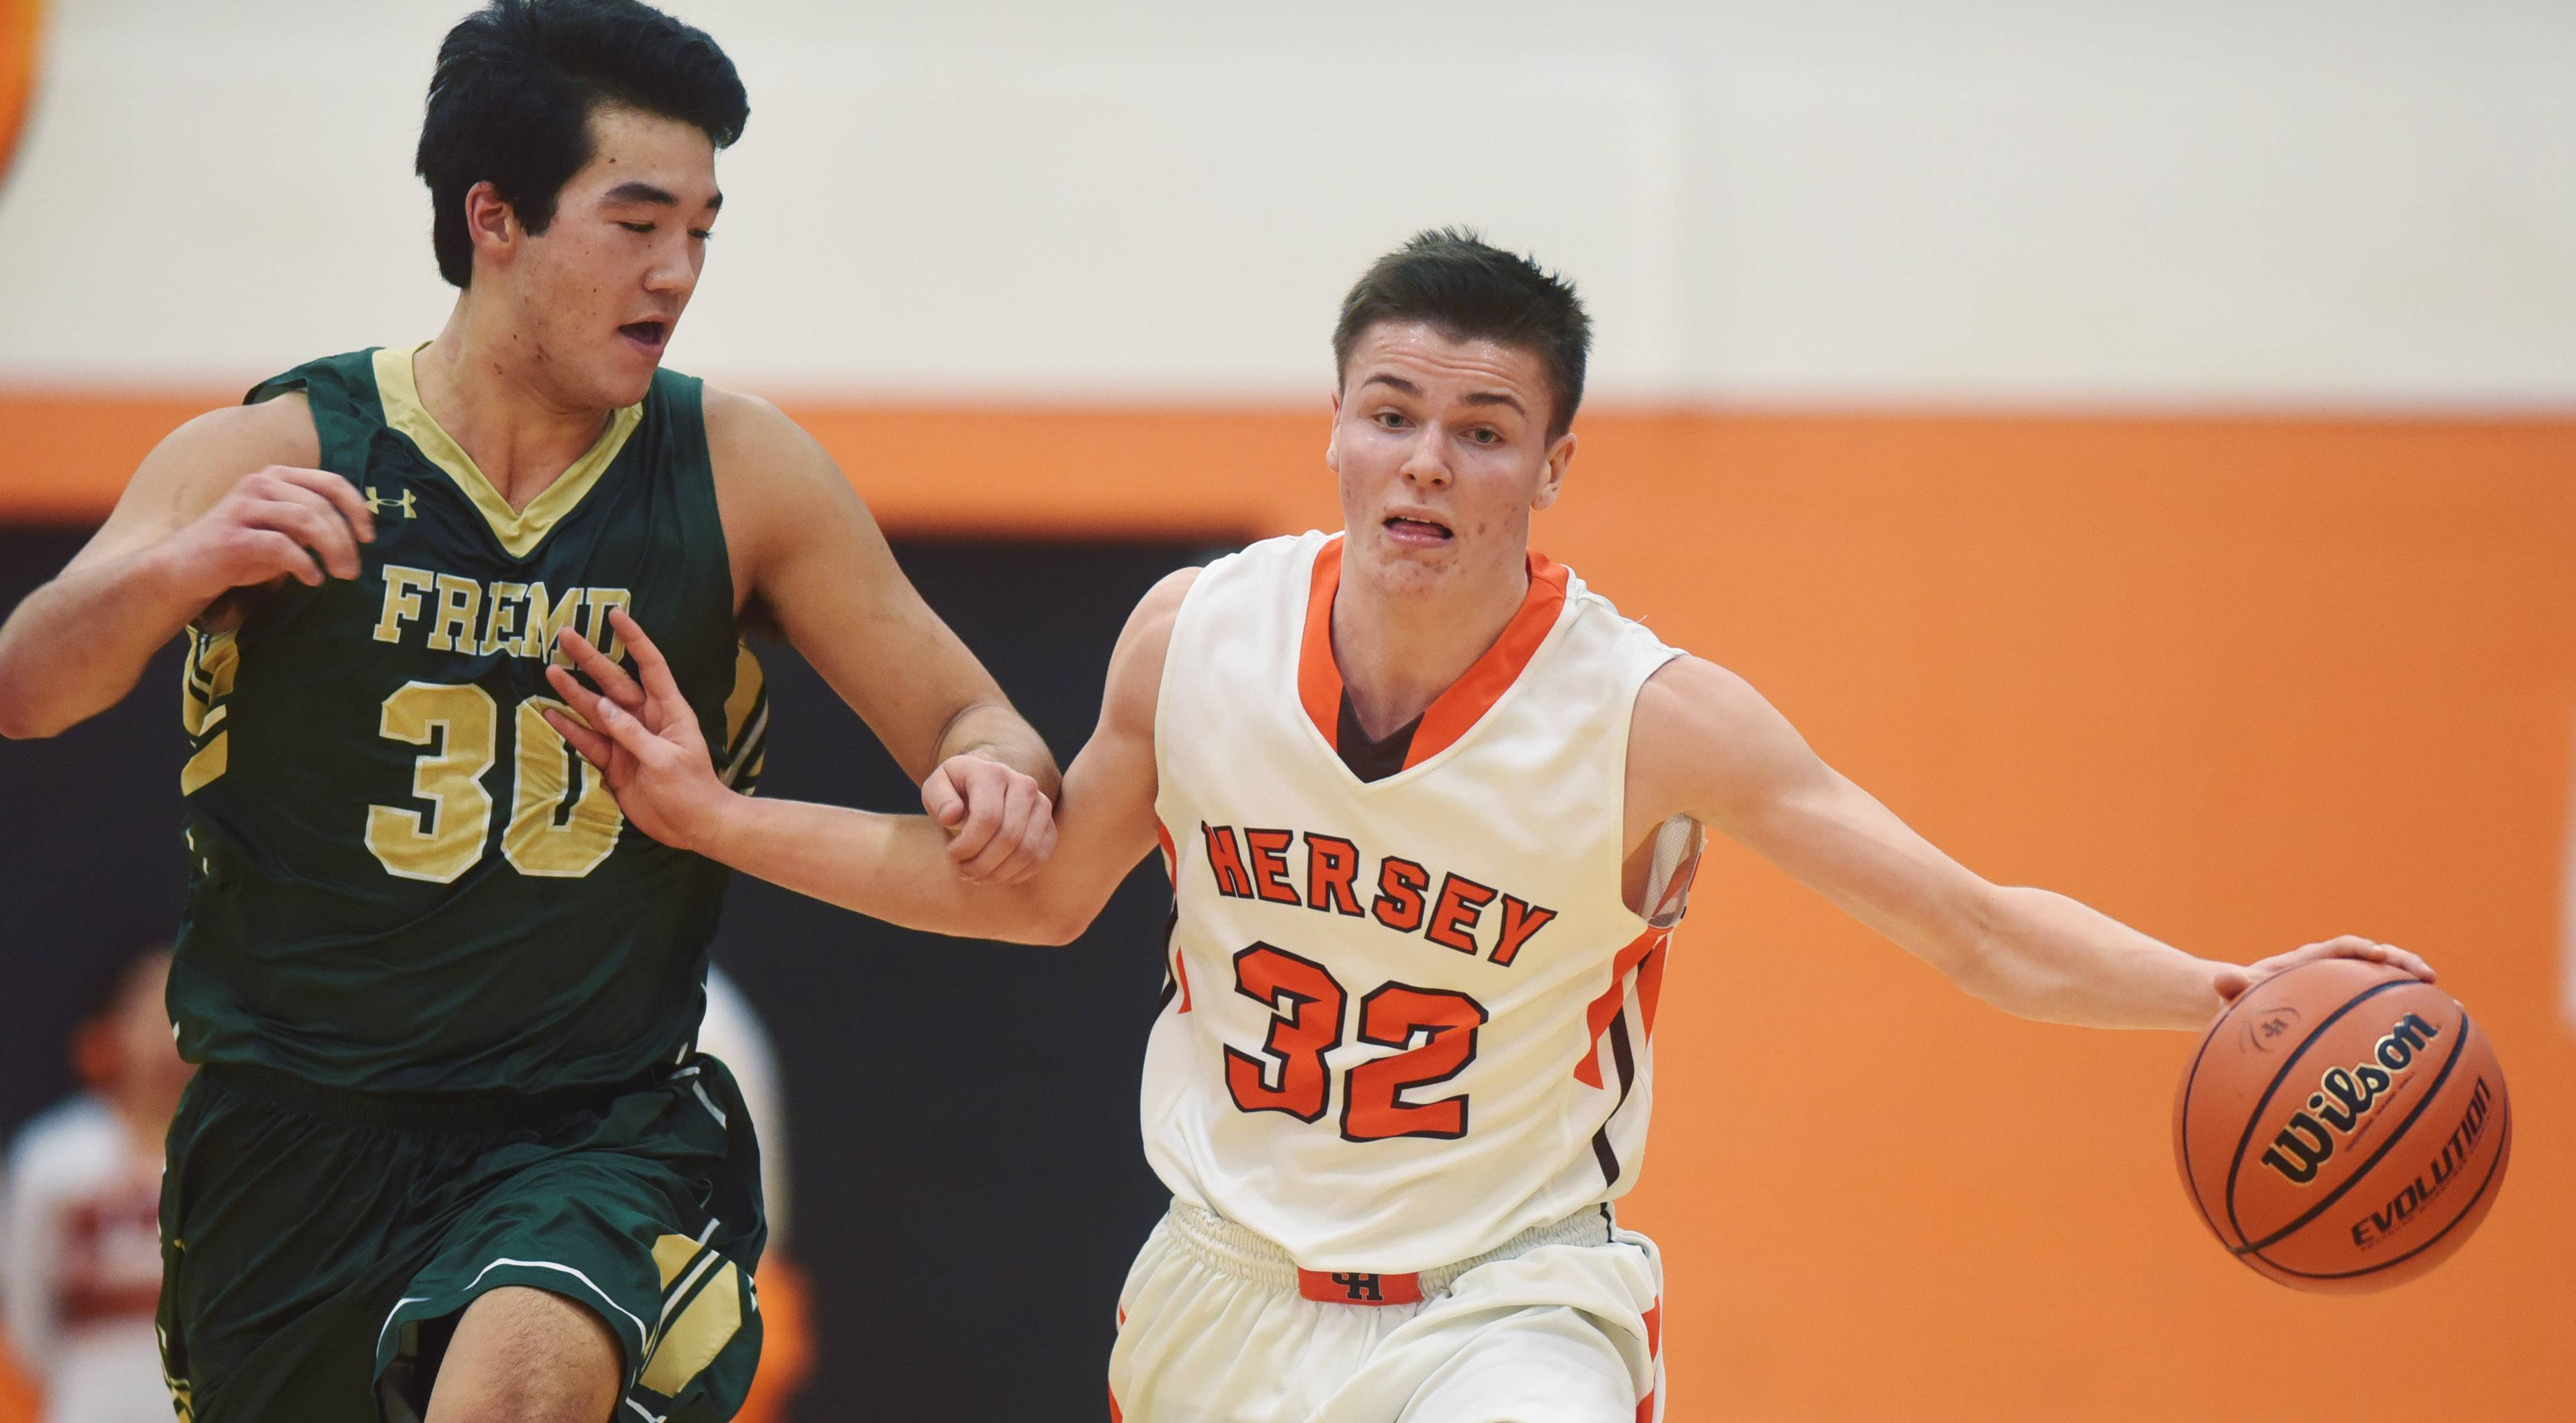 Hersey's Jason Schmidt tries to keep Fremd's Ryan Martin at arm's length during Tuesday's game in Arlington Heights.